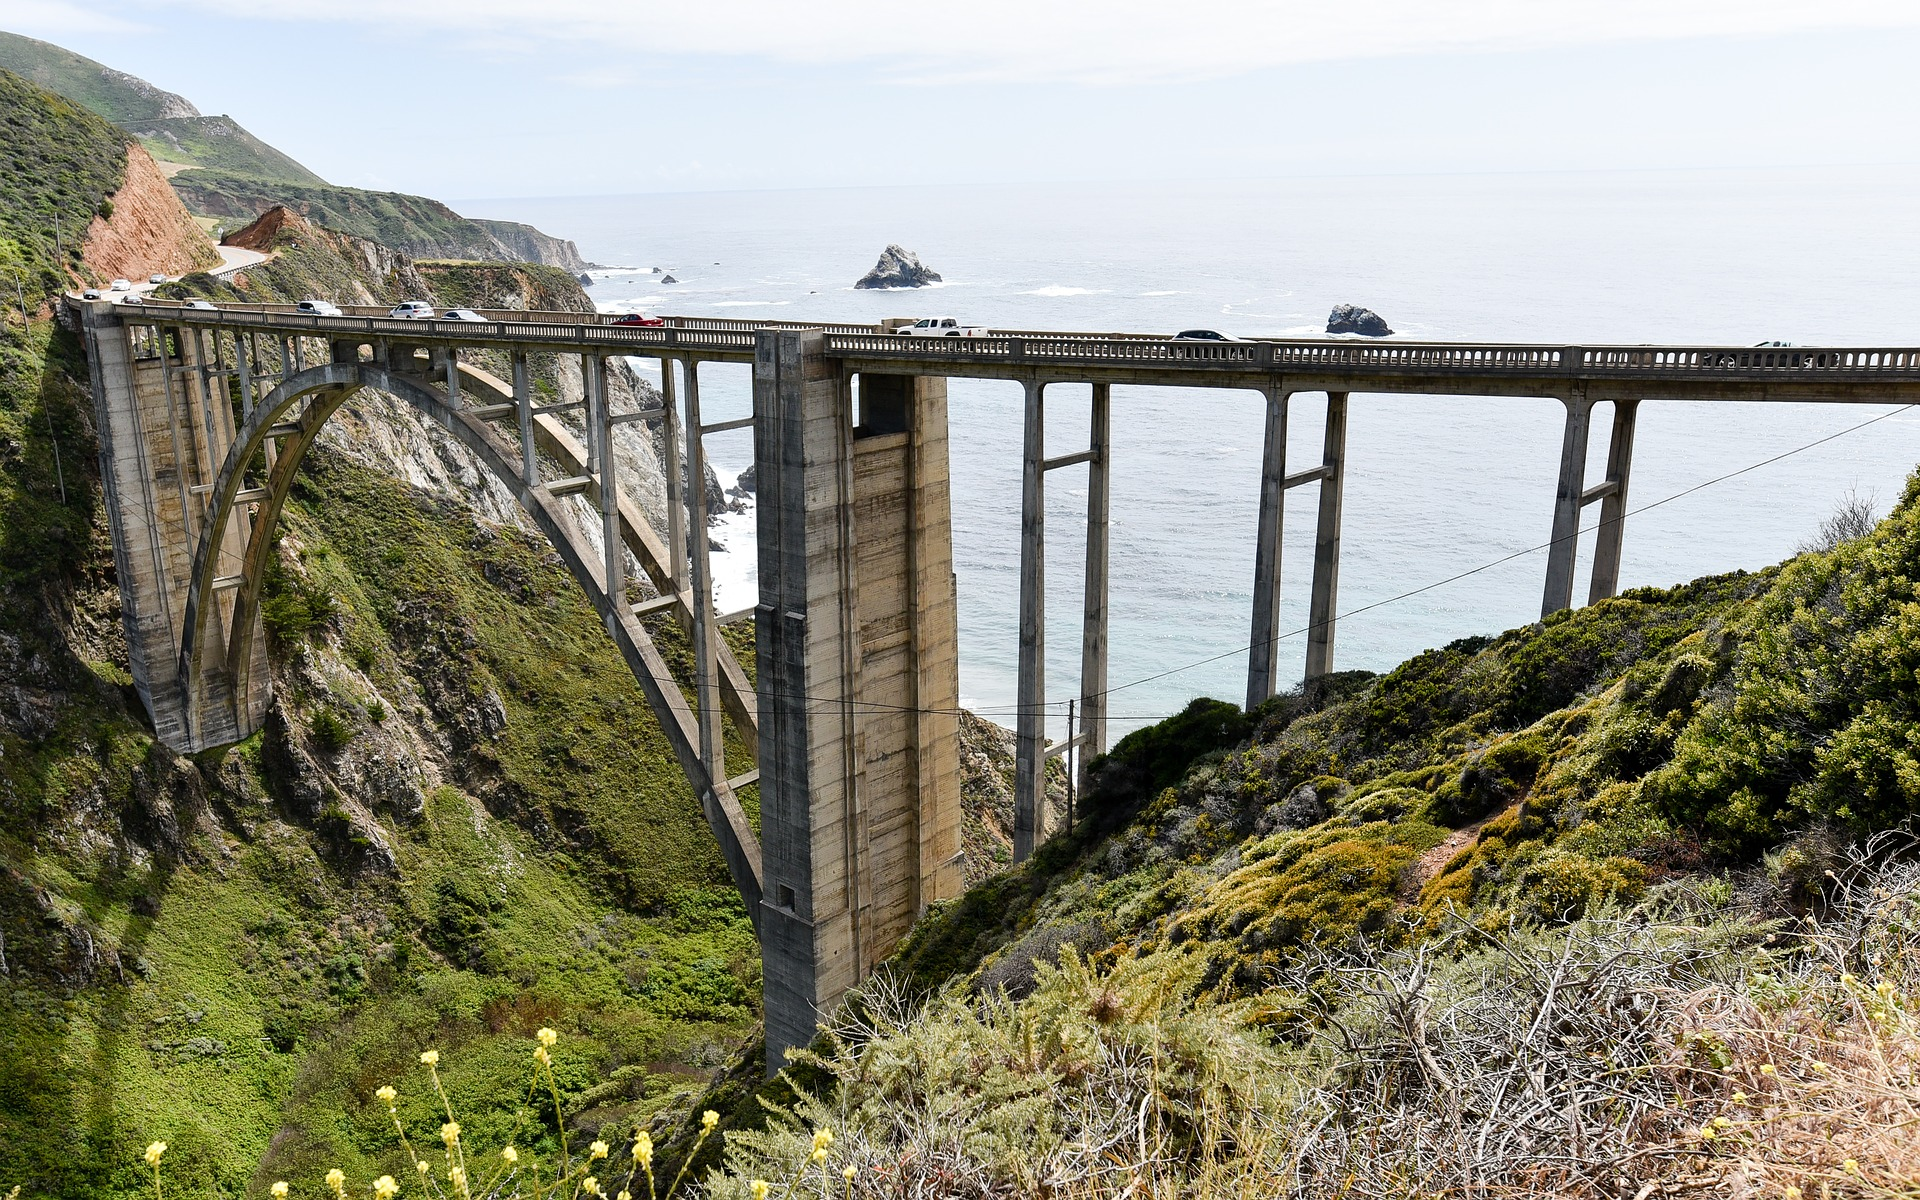 bixby-creek-bridge-1718889_1920